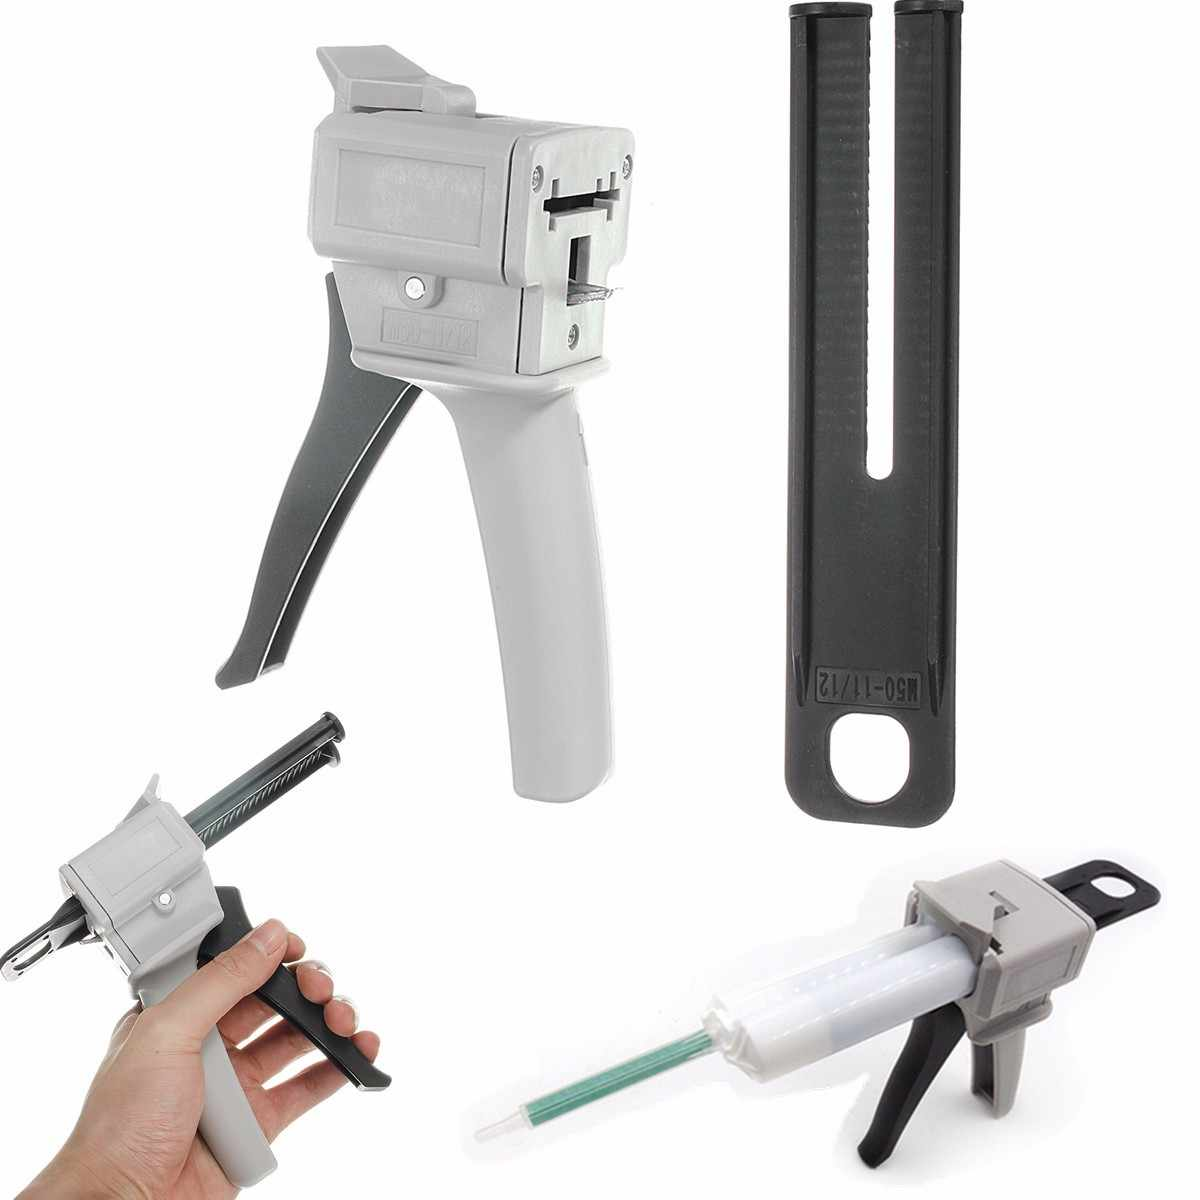 GlueGun 50ml Two Component AB Epoxy Sealant GlueGun Applicator Glue Adhensive Squeeze Mixed 1:1 Manual CaulkingGun Dispenser